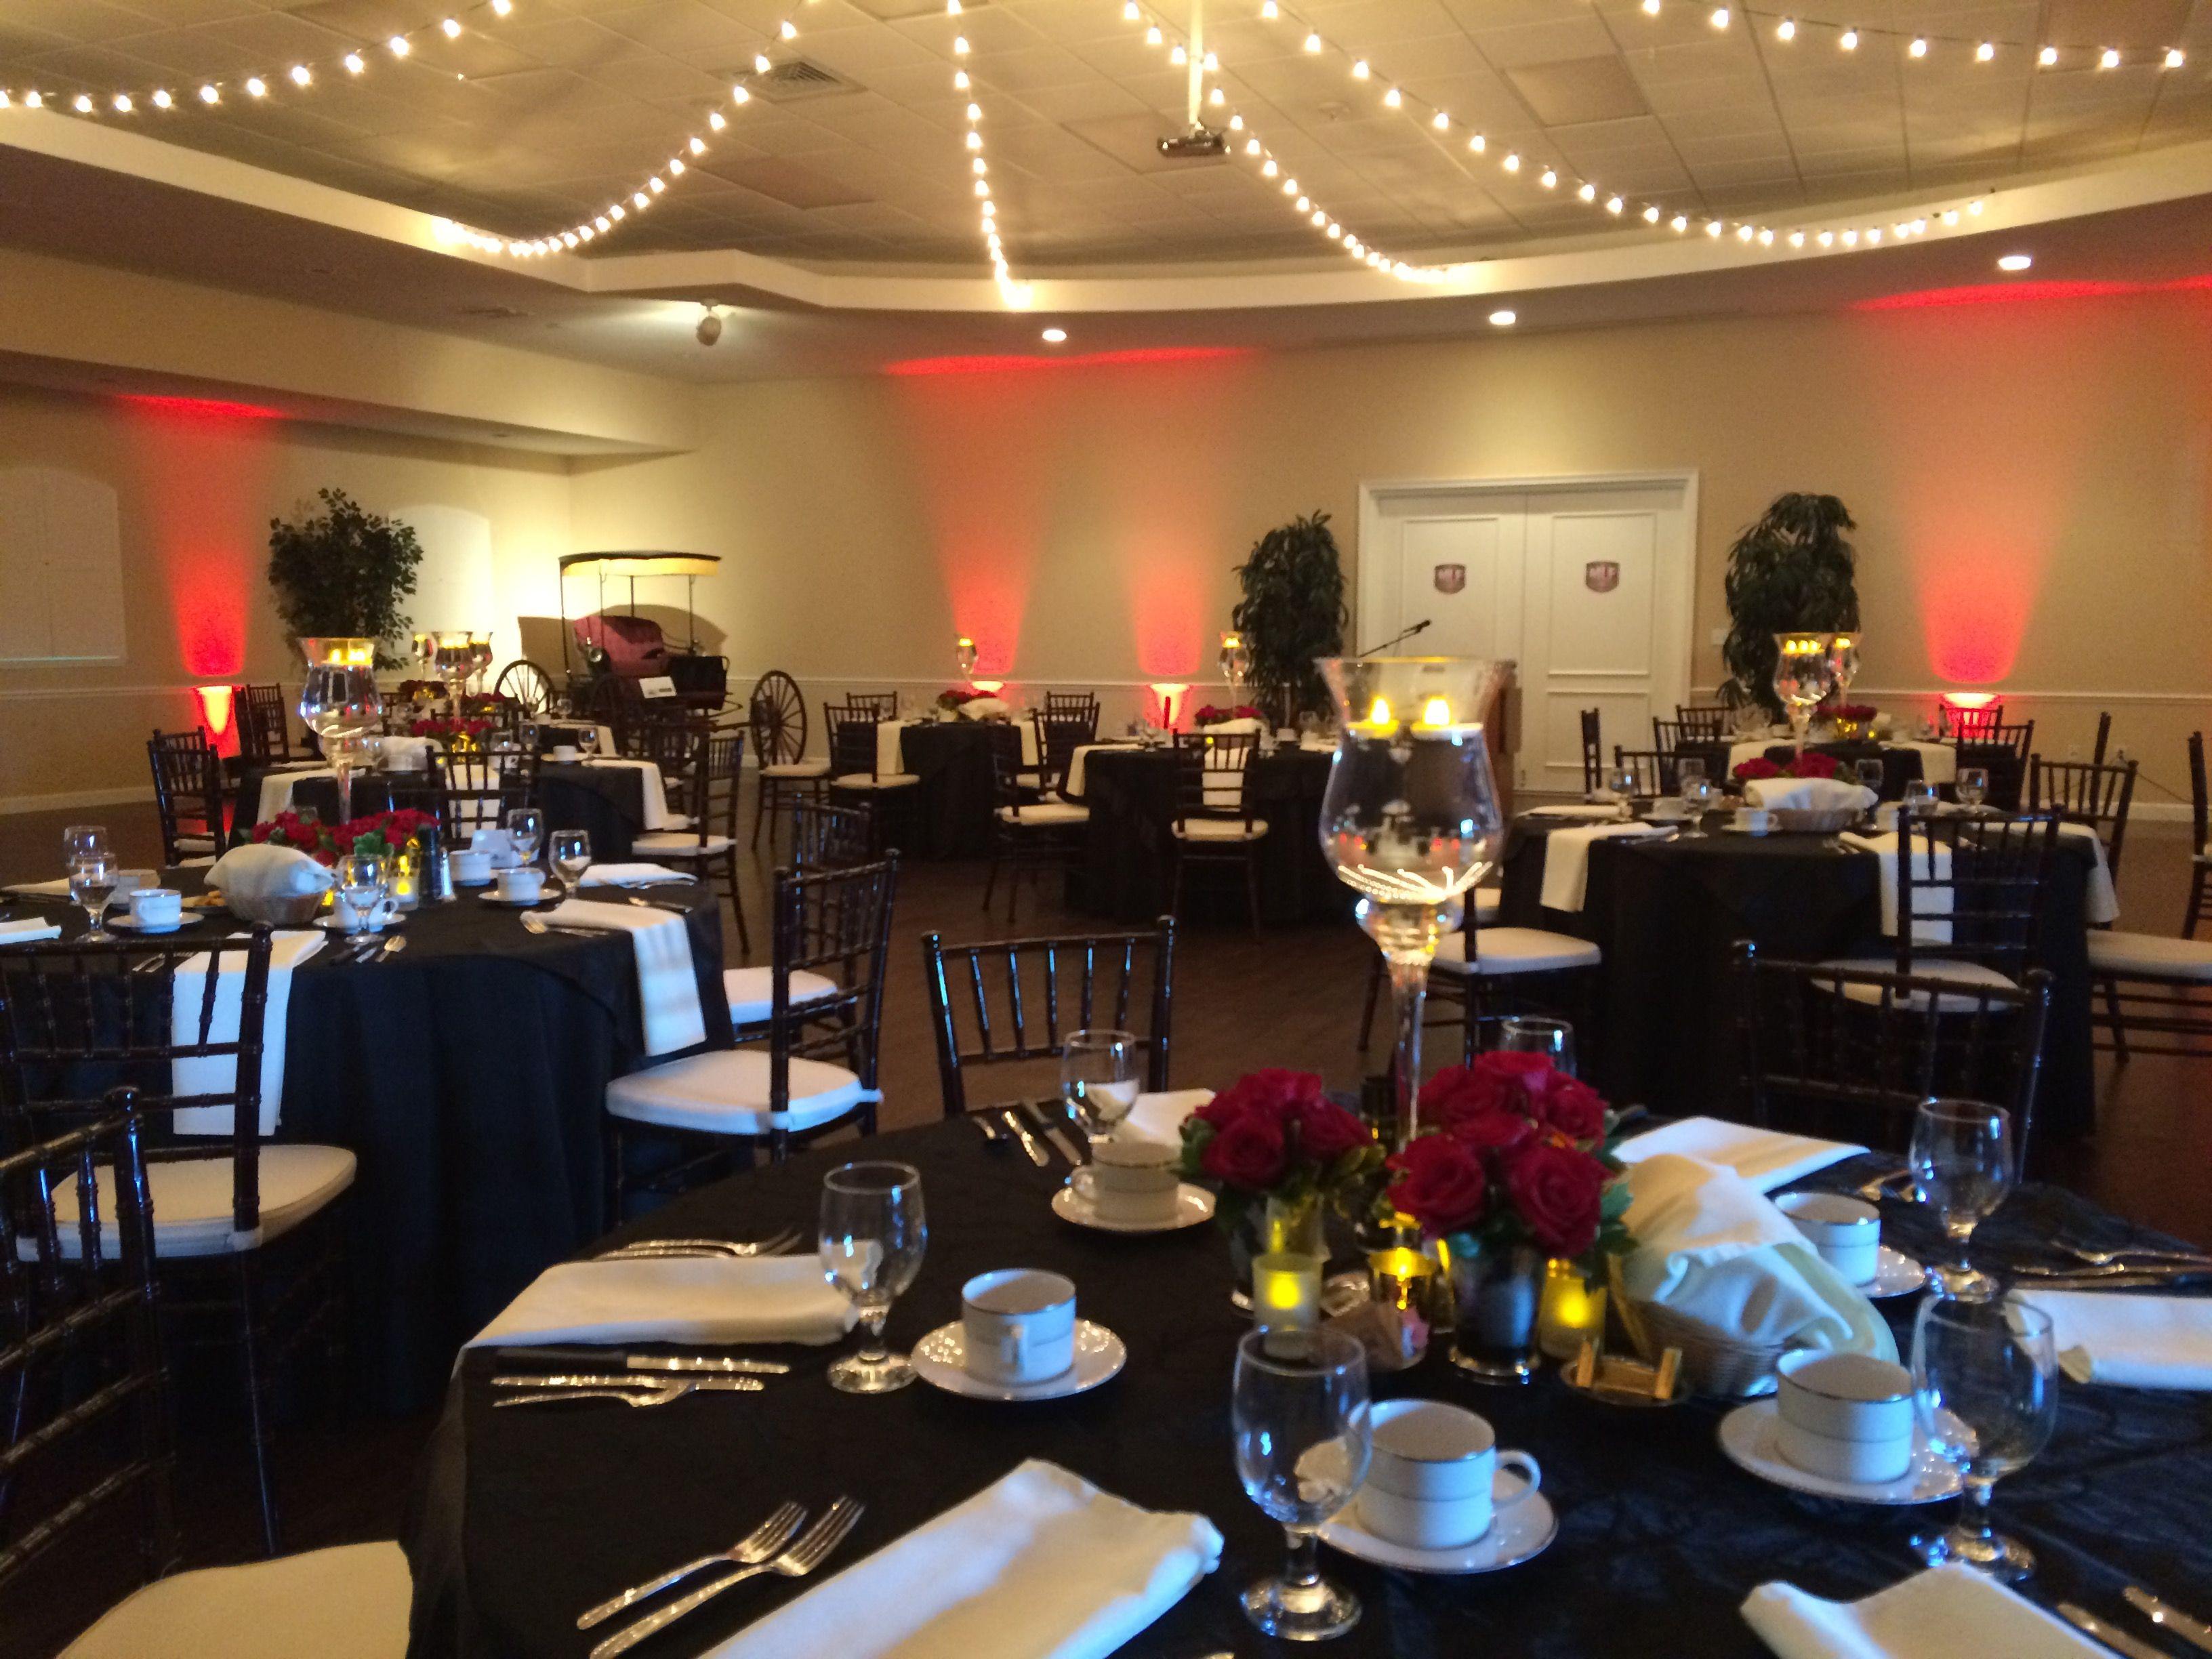 Wedding night decoration ideas  Second night of the Major League Fishing event Love the elegance of